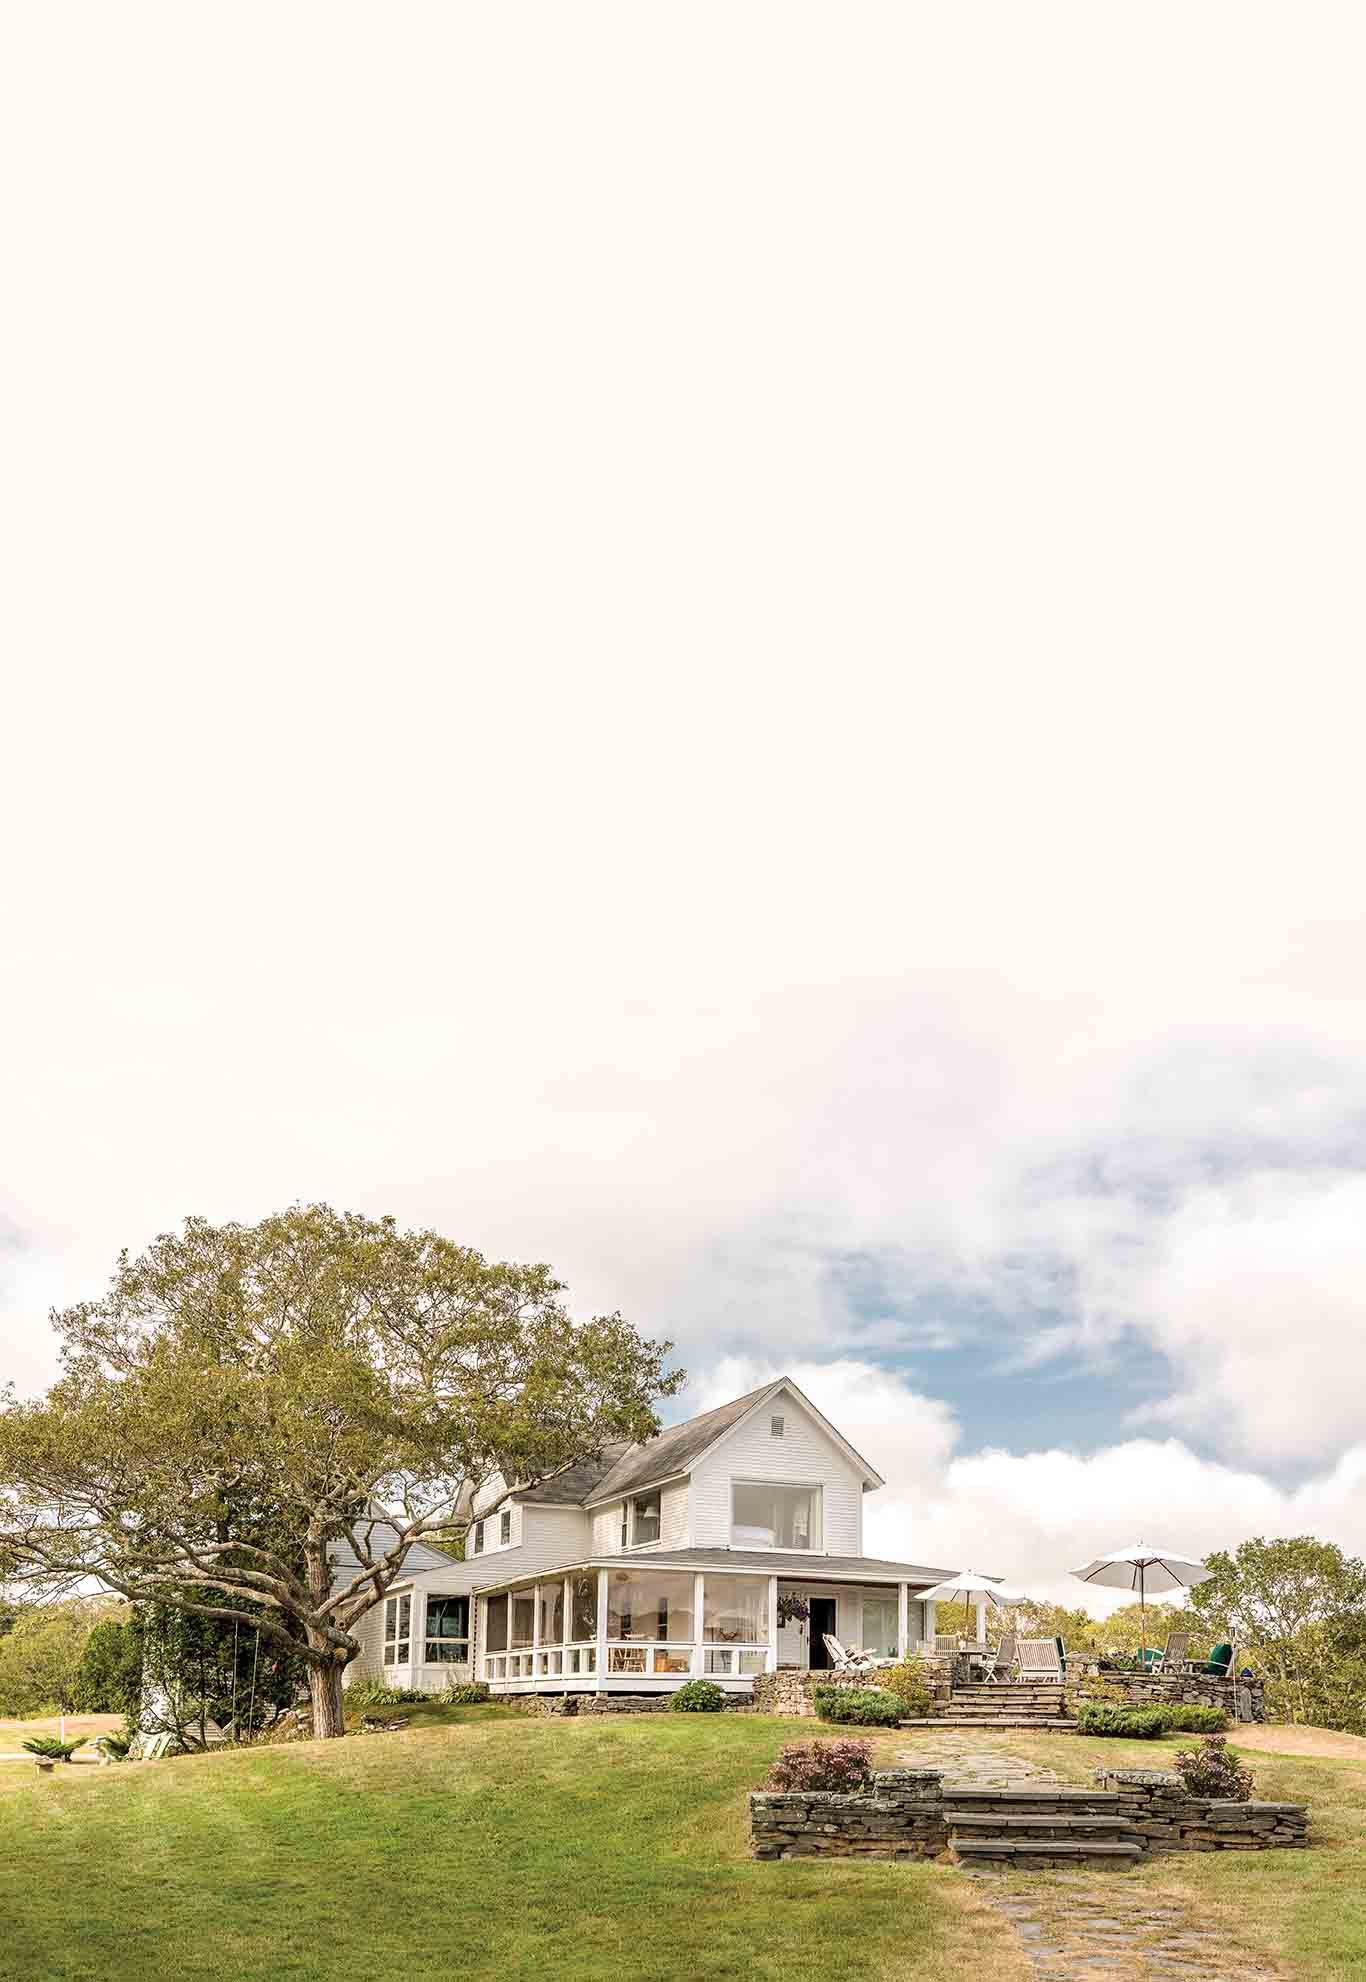 How To Find Your New Maine Home The Maine Mag In 2020 Maine Yarmouth Real Estate Companies